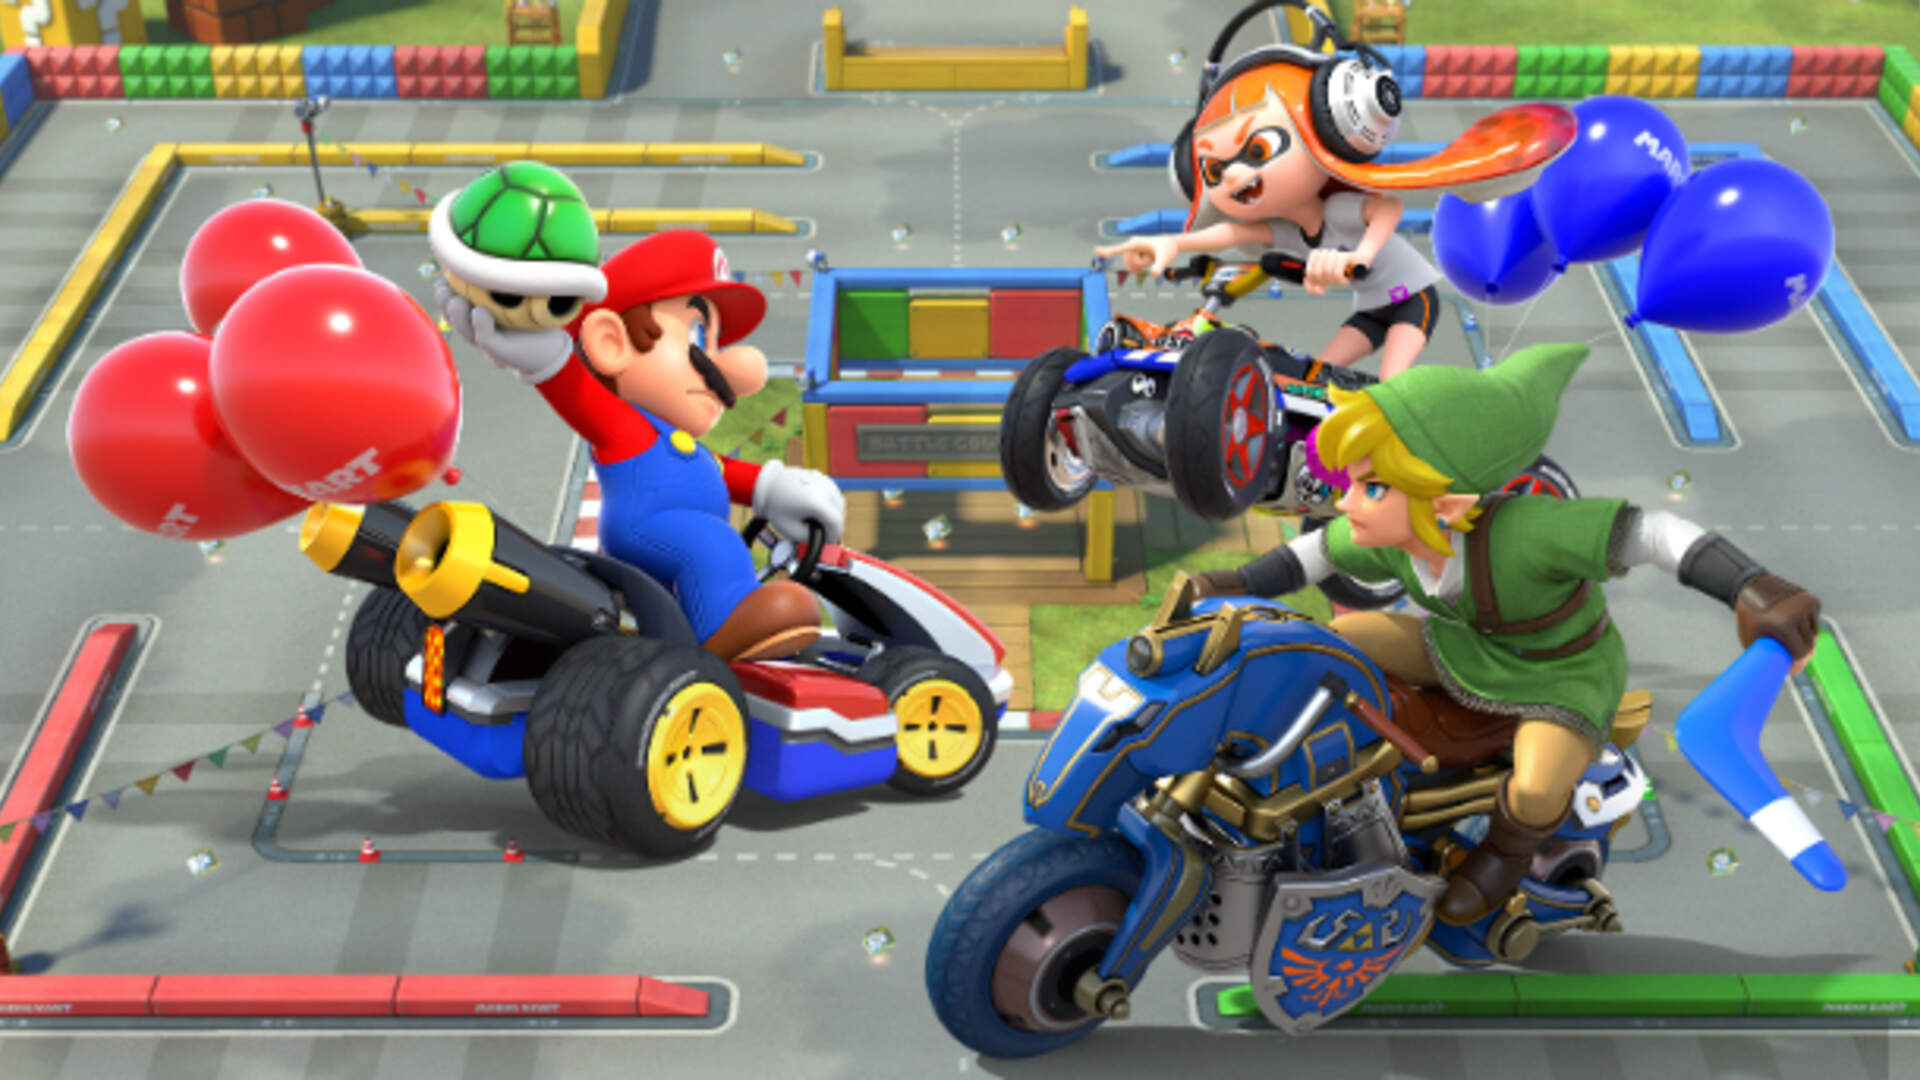 Strangers Bond over Mario Kart 8 Deluxe for the Nintendo Switch